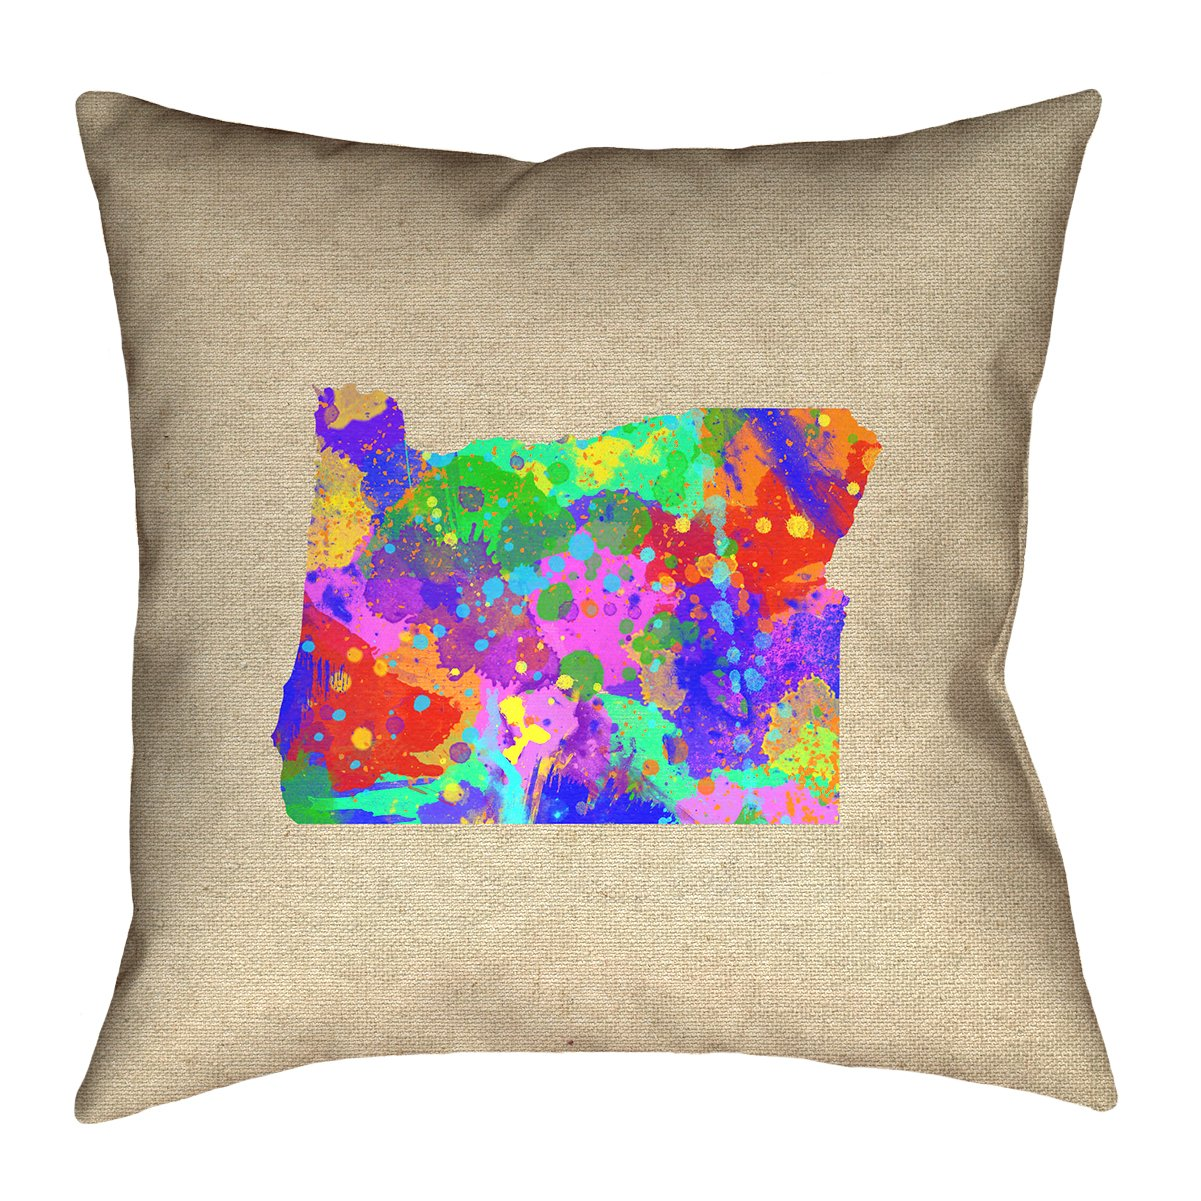 ArtVerse Katelyn Smith 20 x 20 Cotton Twill Double Sided Print with Concealed Zipper /& Insert Oregon Watercolor Pillow